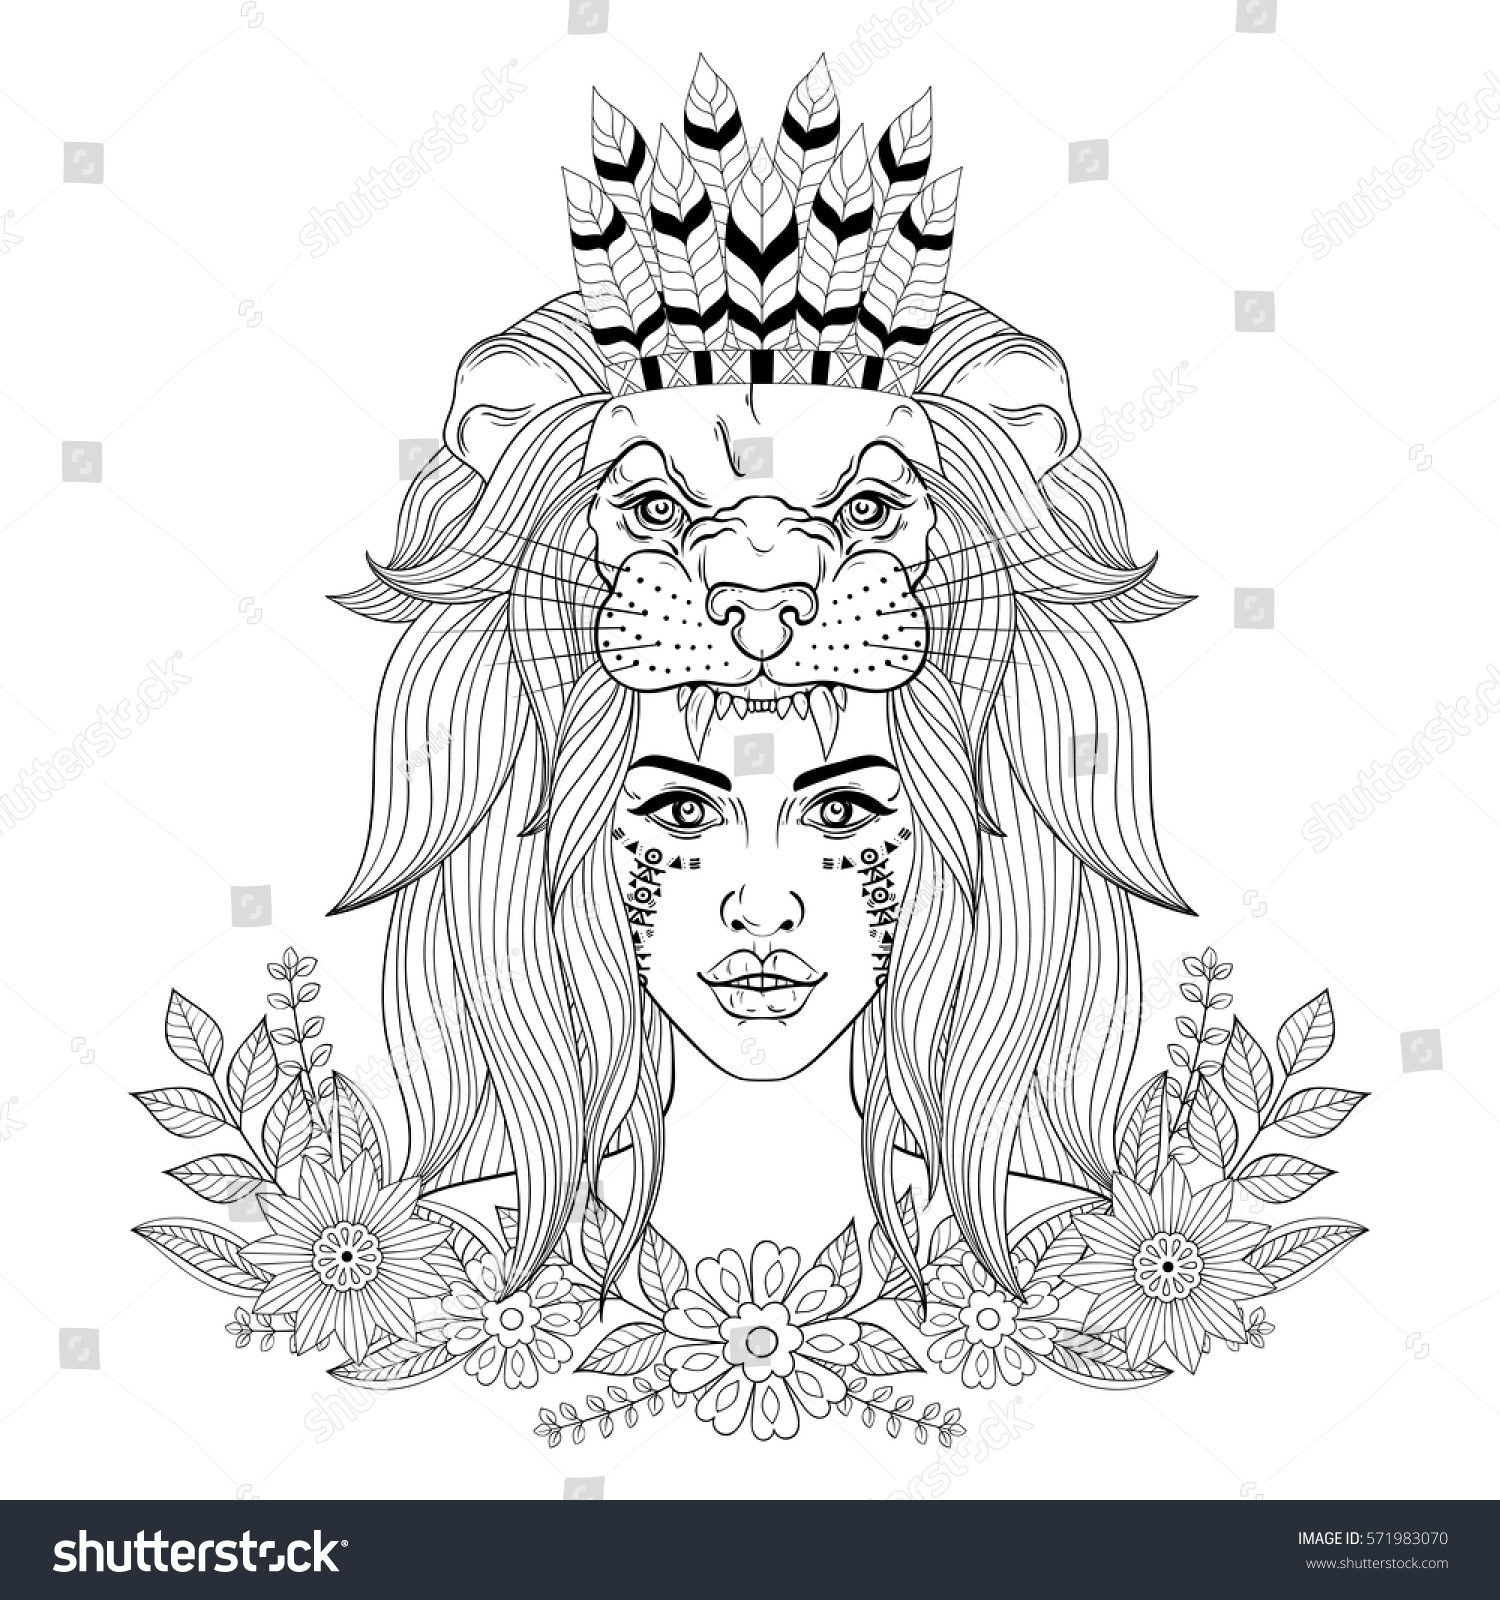 Bonnet Girls Coloring Pages | Embroidery patterns, Redwork ... | 1600x1500